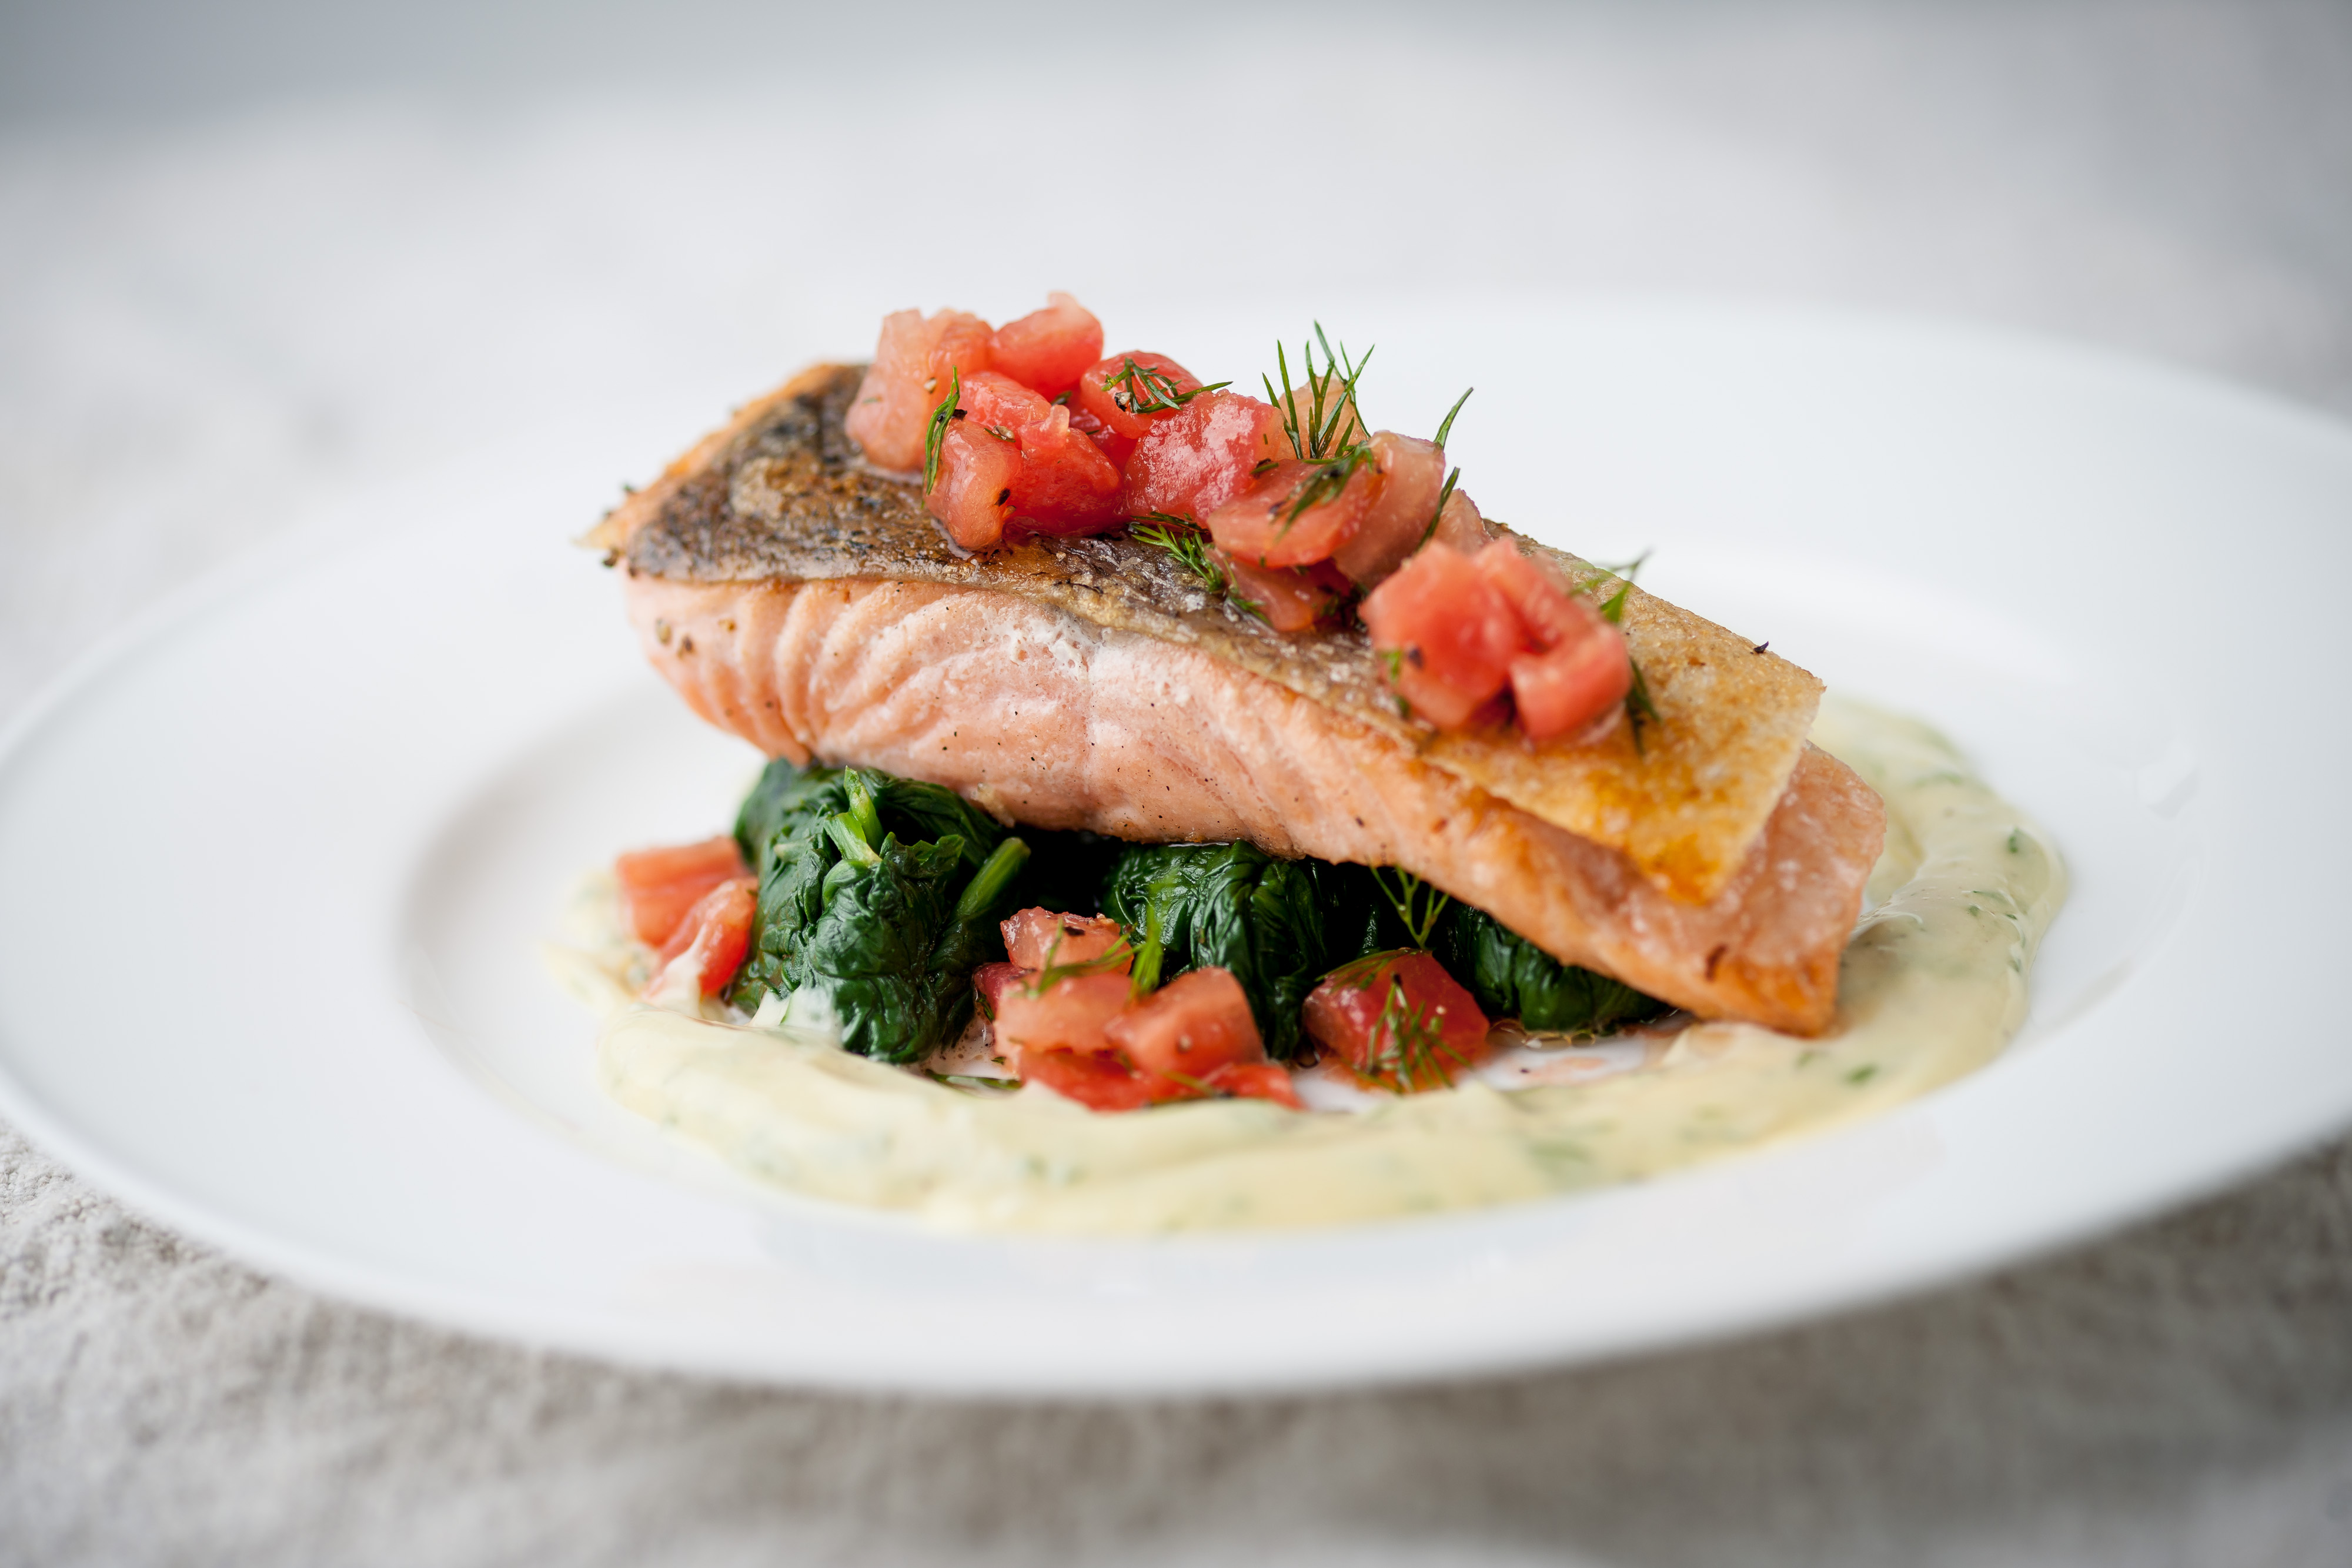 Scottish salmon fillets recipes food fish recipes for Fish cooking recipes